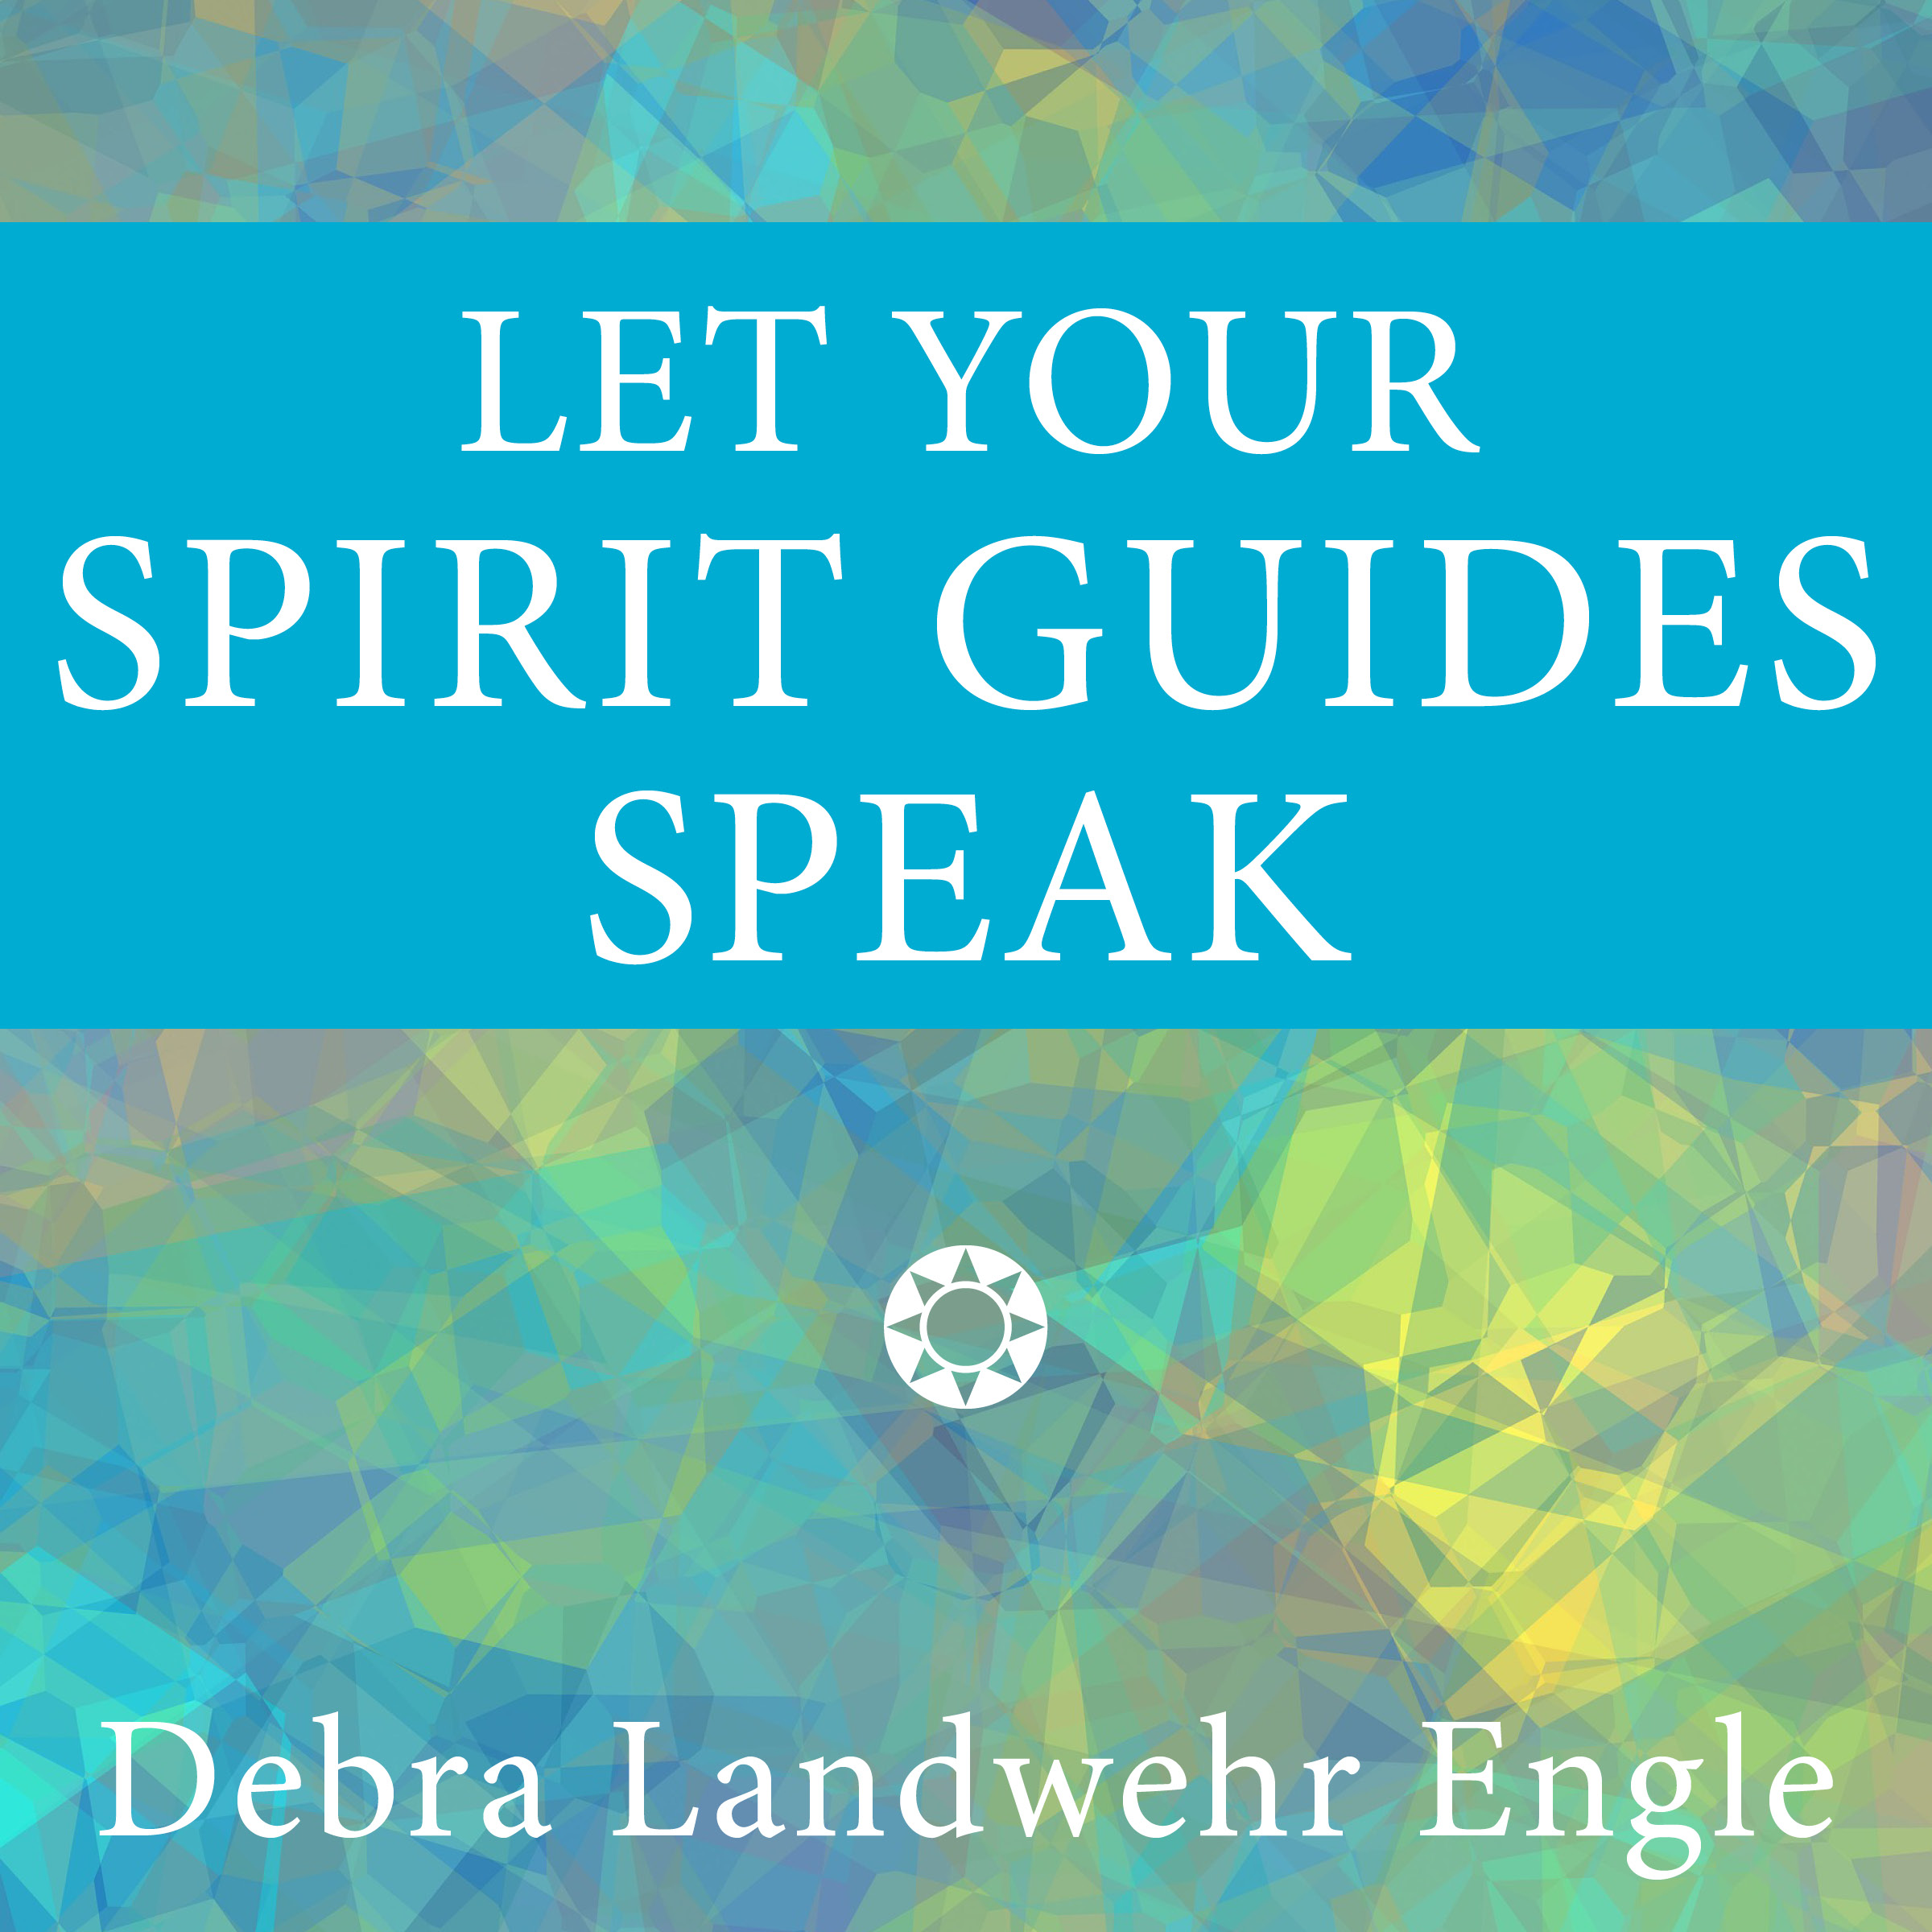 Let Your Spirit Guides Speak podcast logo 1-27-17